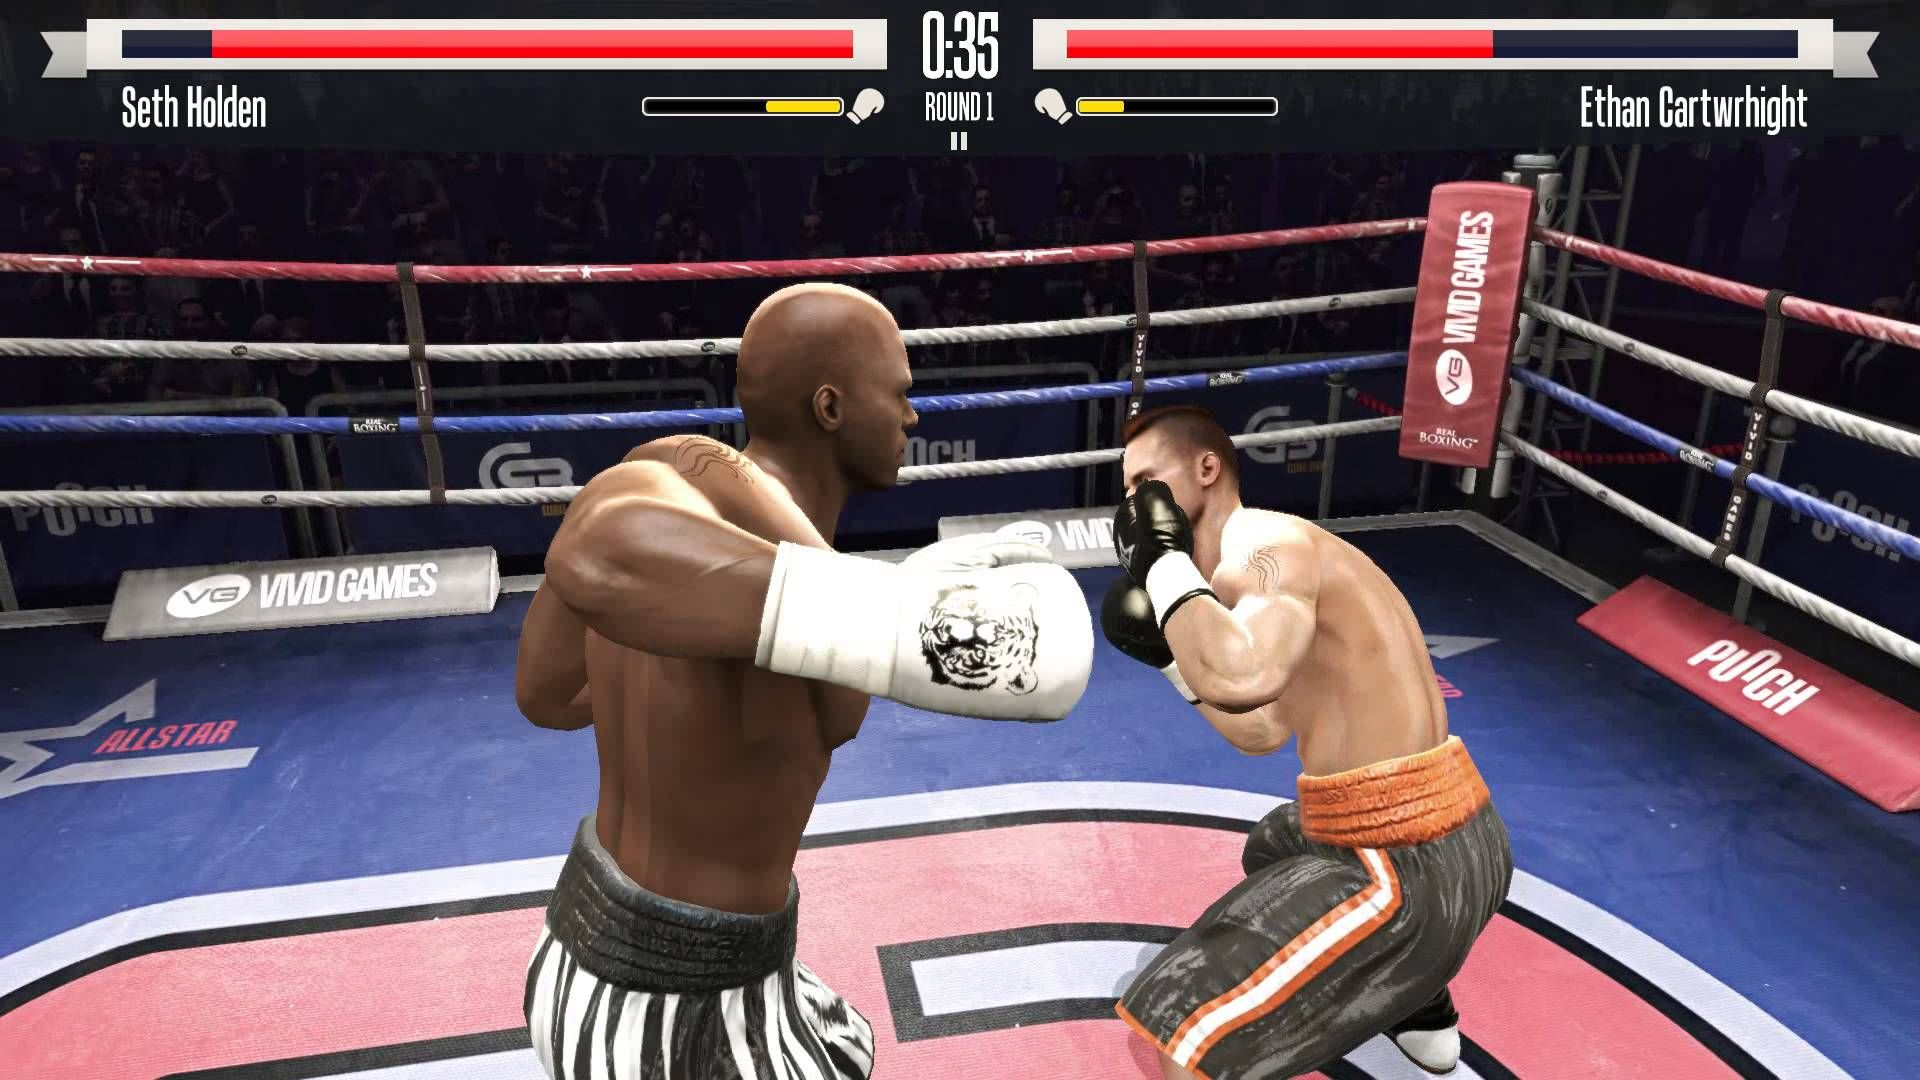 Real Boxing Free Download Full Game For PC Pc games